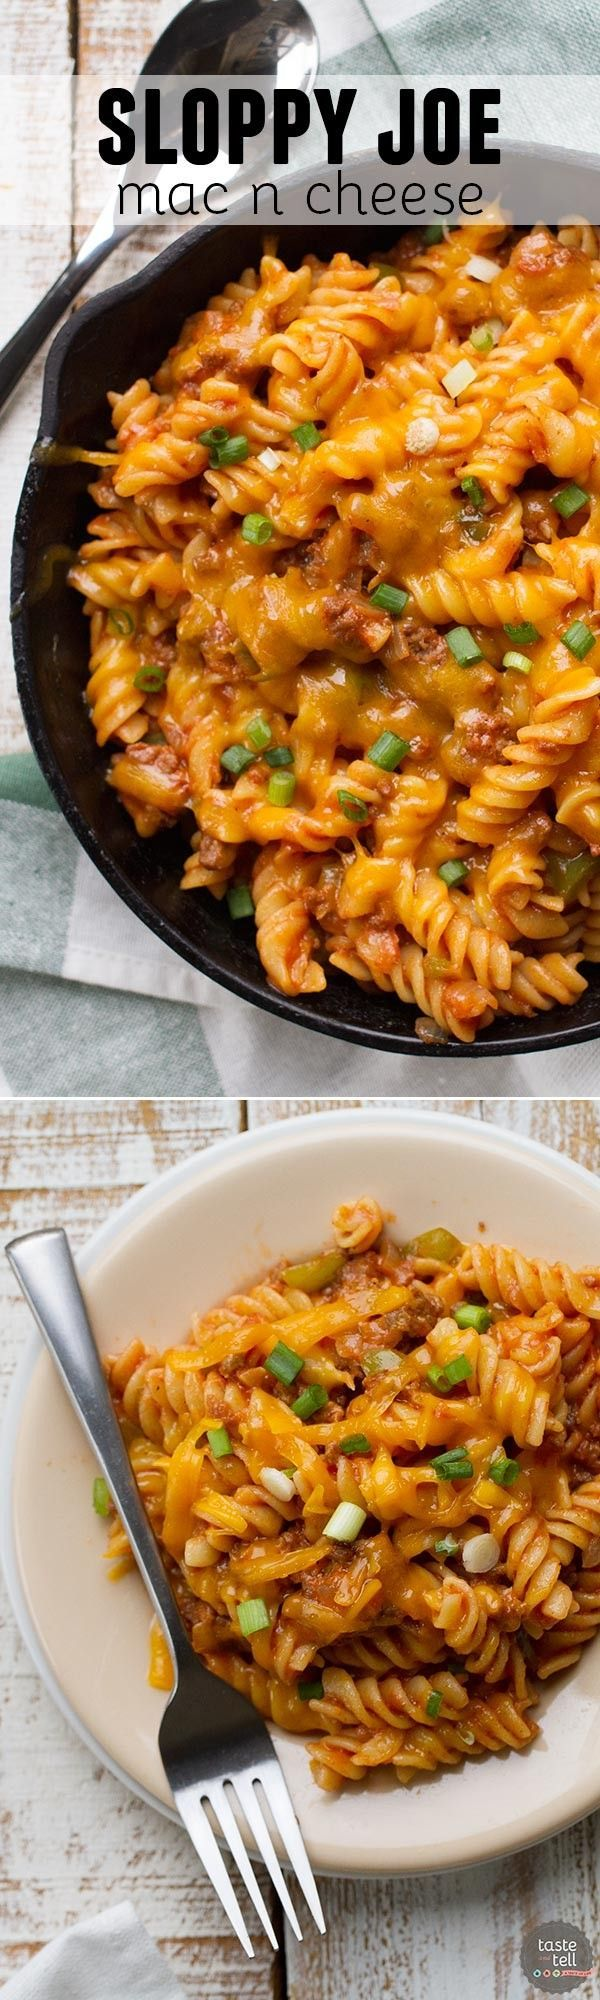 20 Greatest Comfort Foods to Fix Your Day